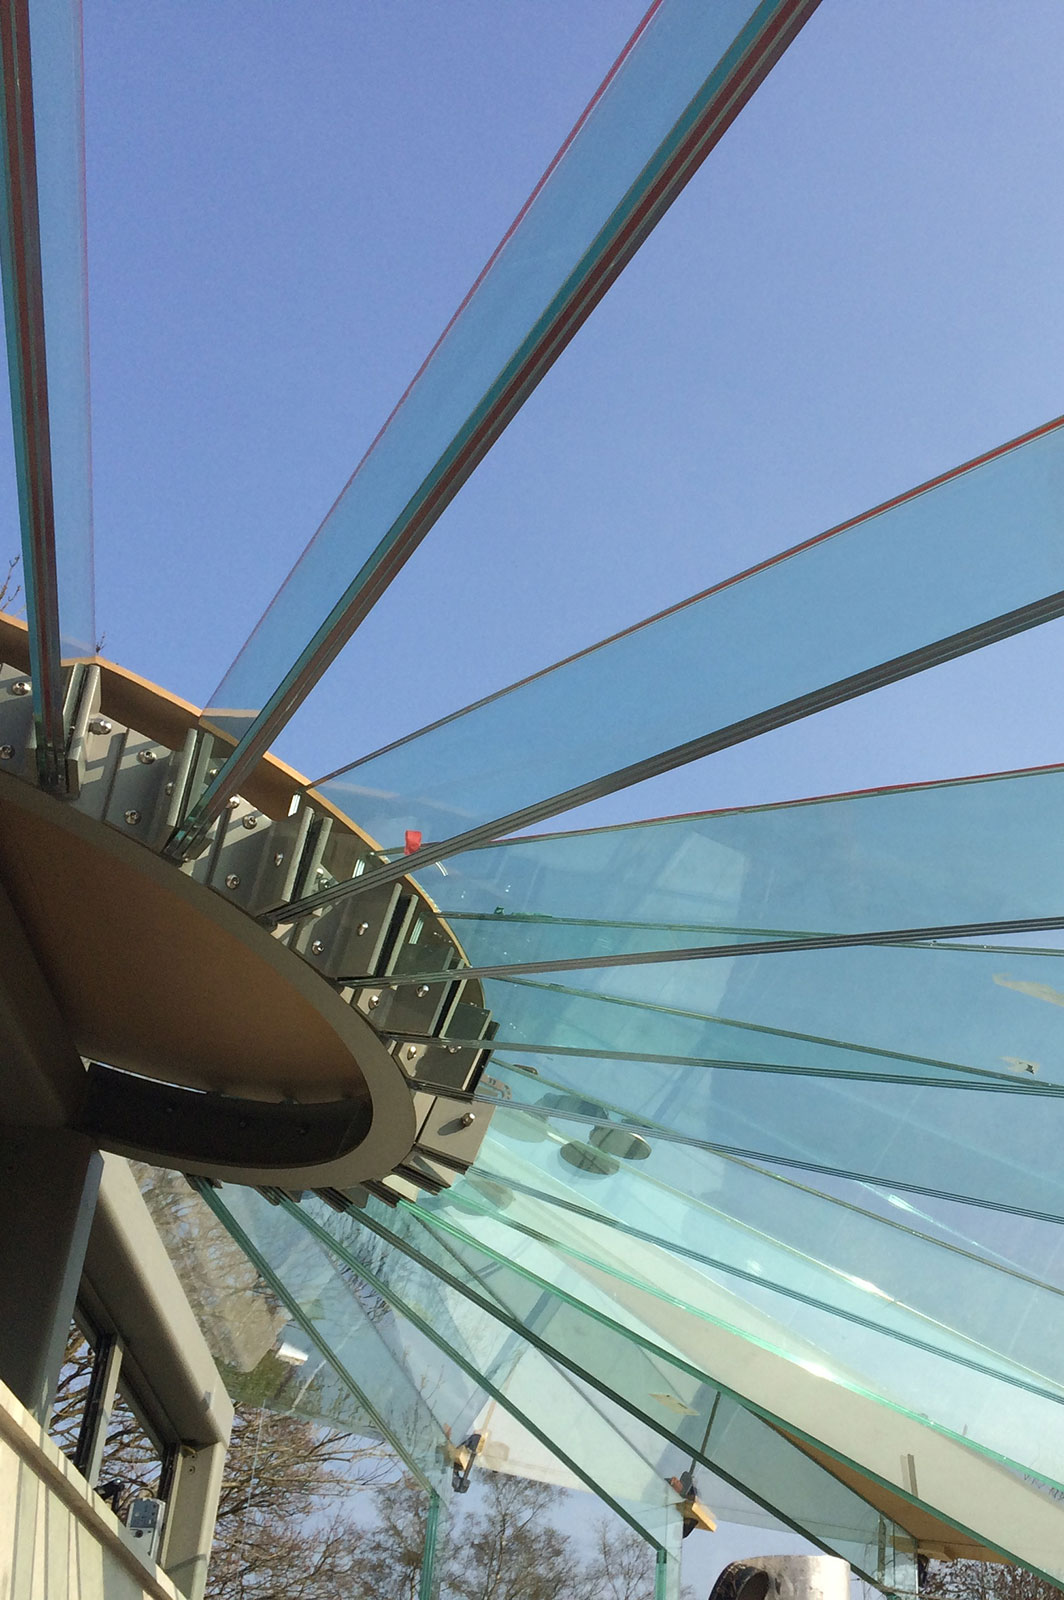 Structural Glass Roof With Triple Laminate Glass Beams